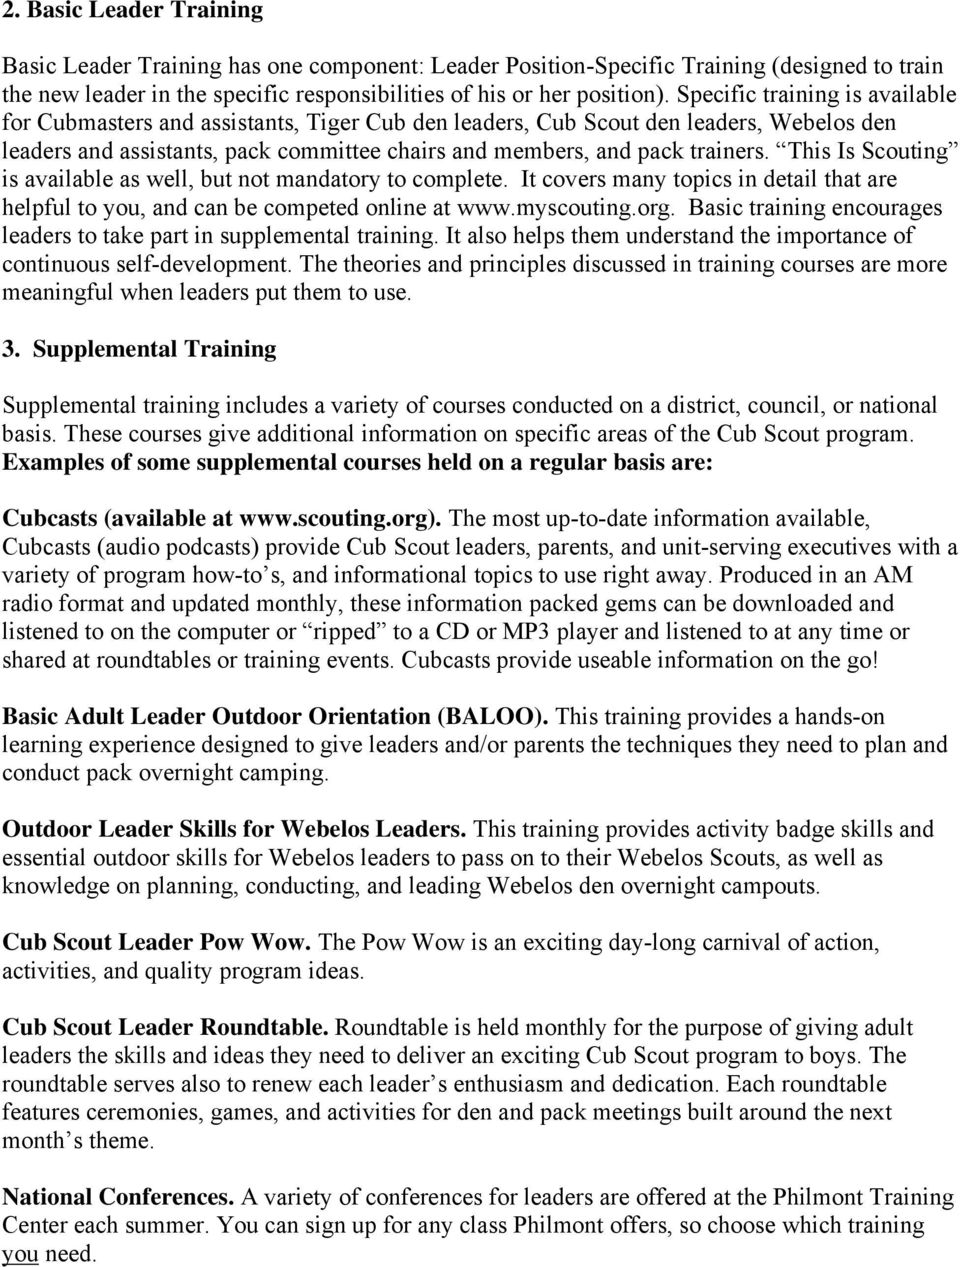 This Is Scouting is available as well, but not mandatory to complete. It covers many topics in detail that are helpful to you, and can be competed online at www.myscouting.org.